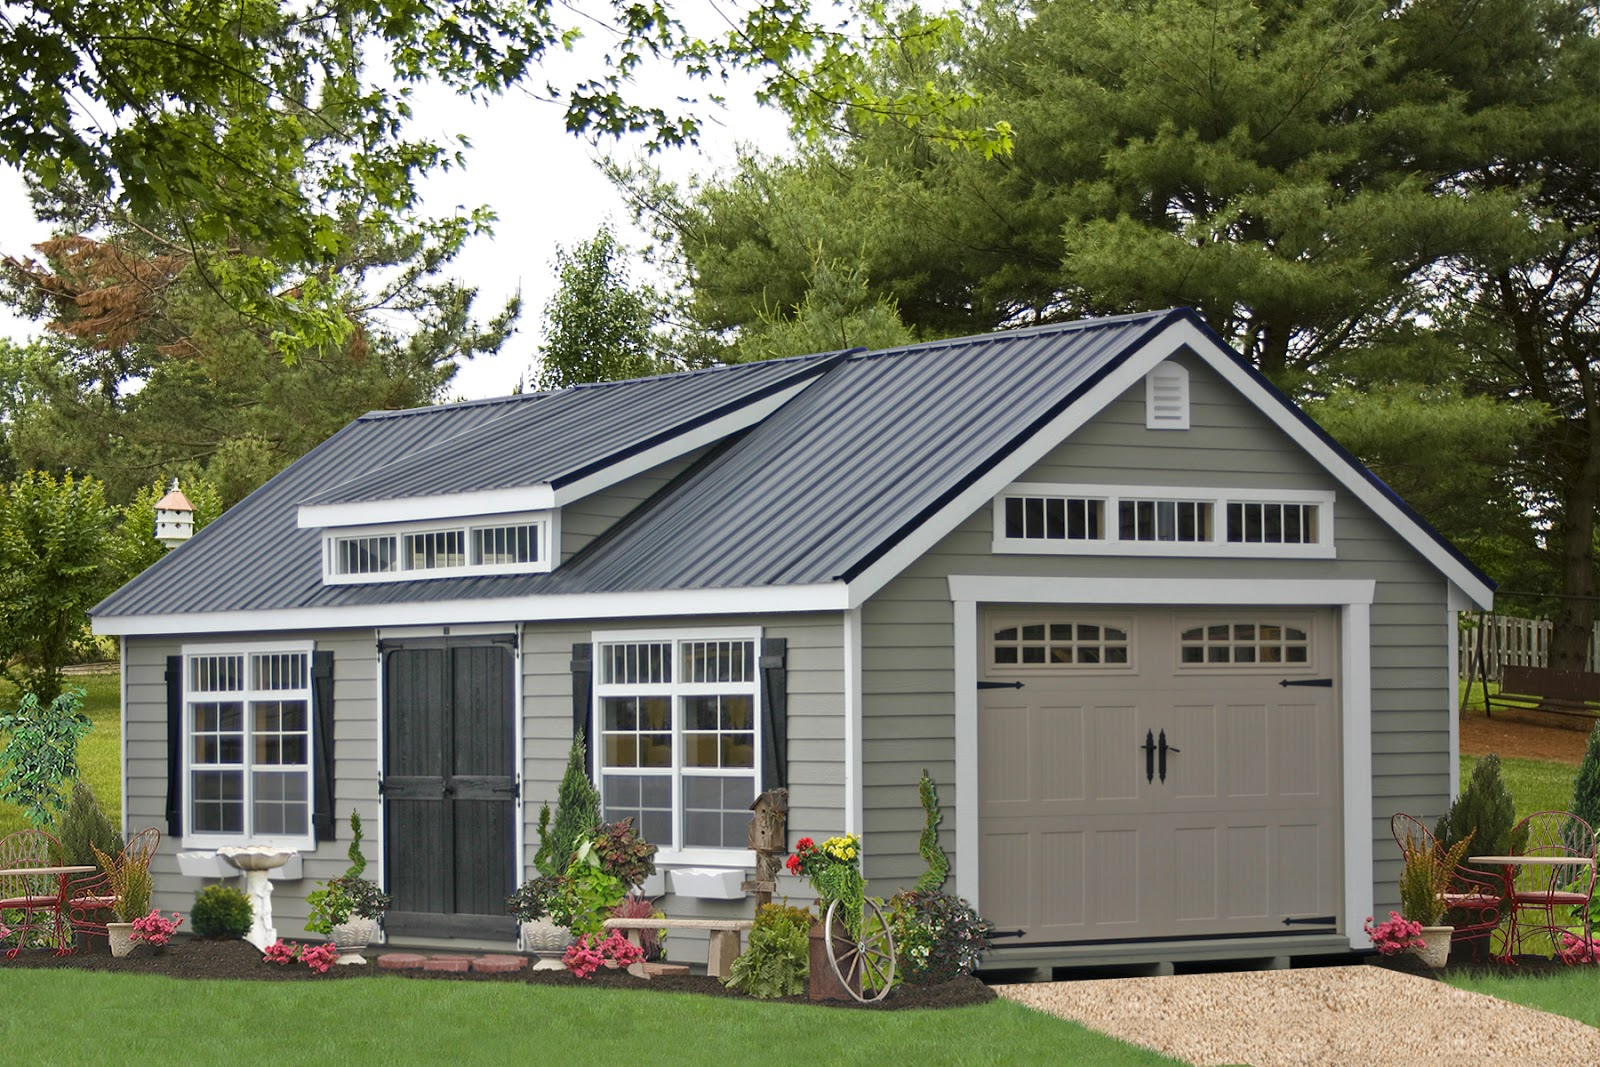 prefab car garages for sale in pa nj ny ct de md va md wv nc me nh and byond - Garden Sheds Nh